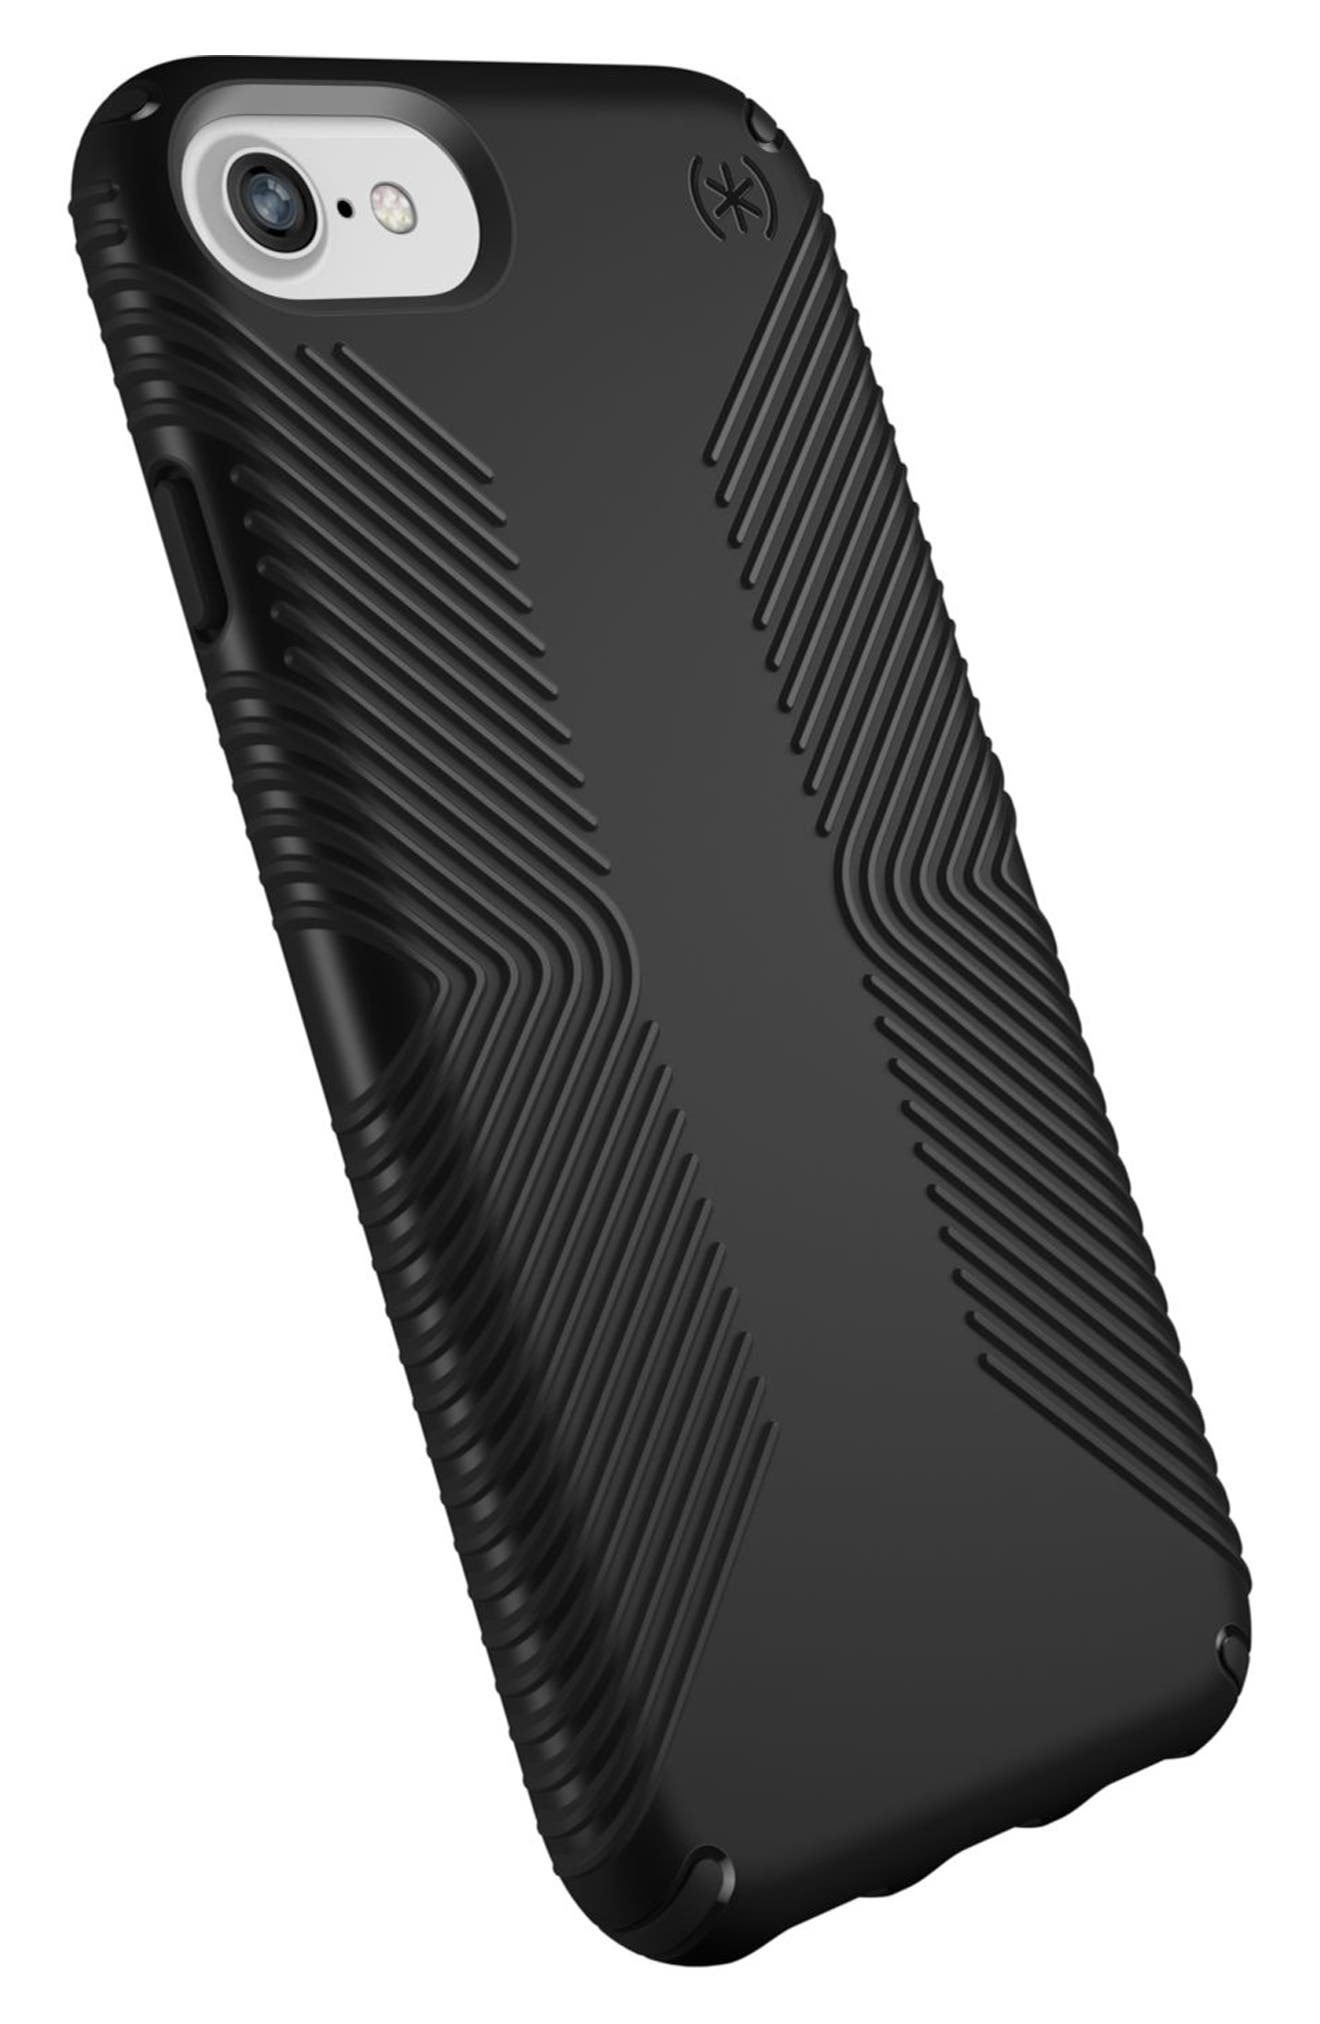 Grip iPhone 6/6s/7/8 Case,                             Alternate thumbnail 4, color,                             Black/ Black